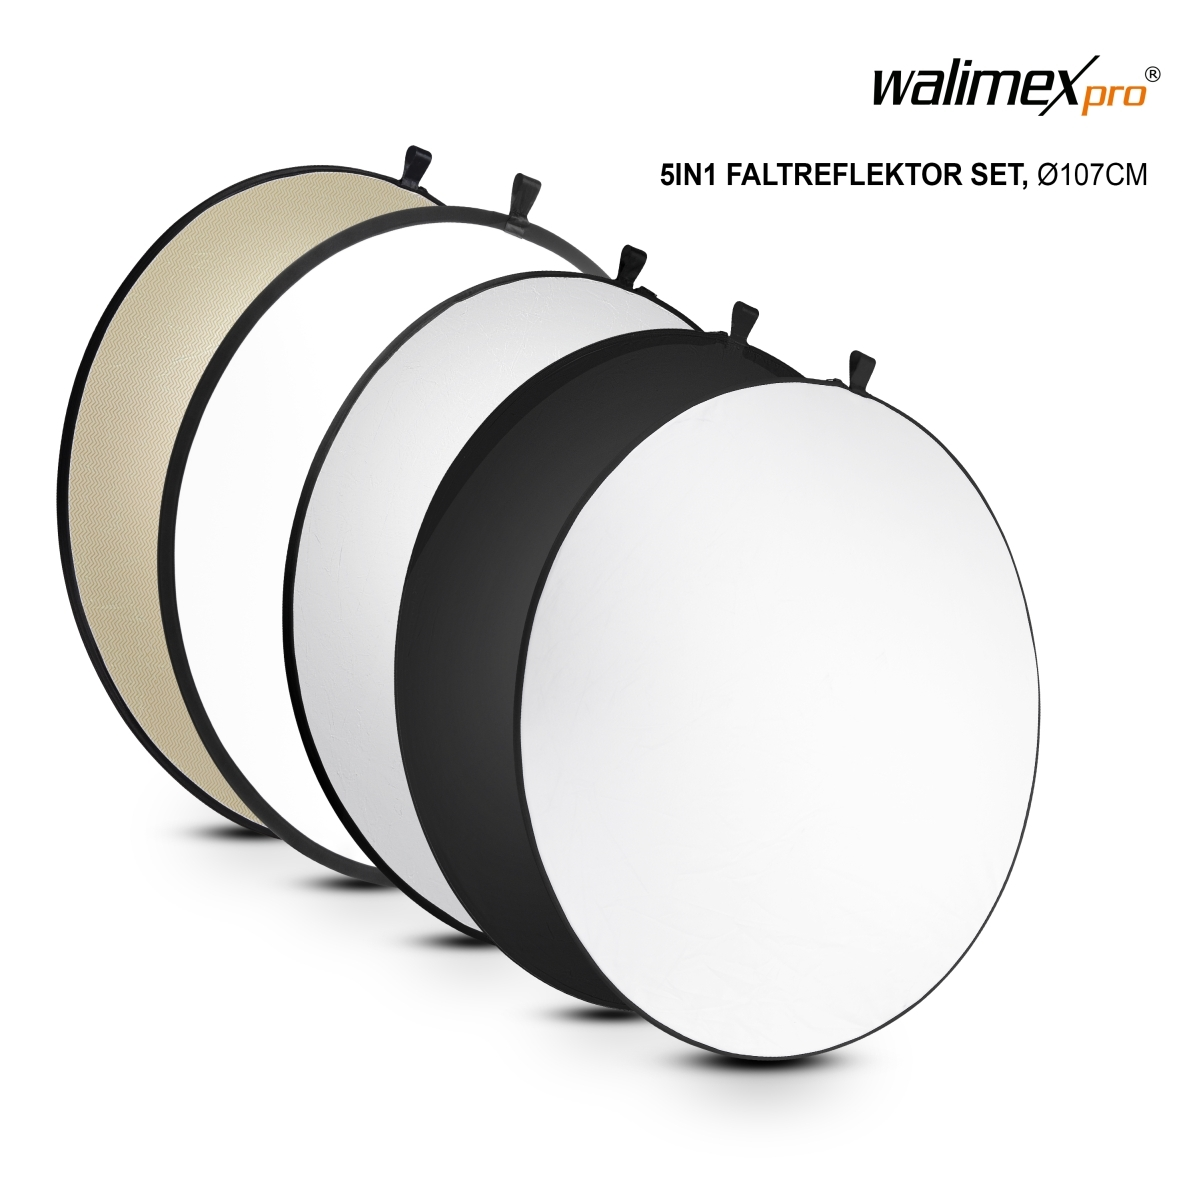 Walimex pro 5in1 Foldable Reflector Set, 107cm